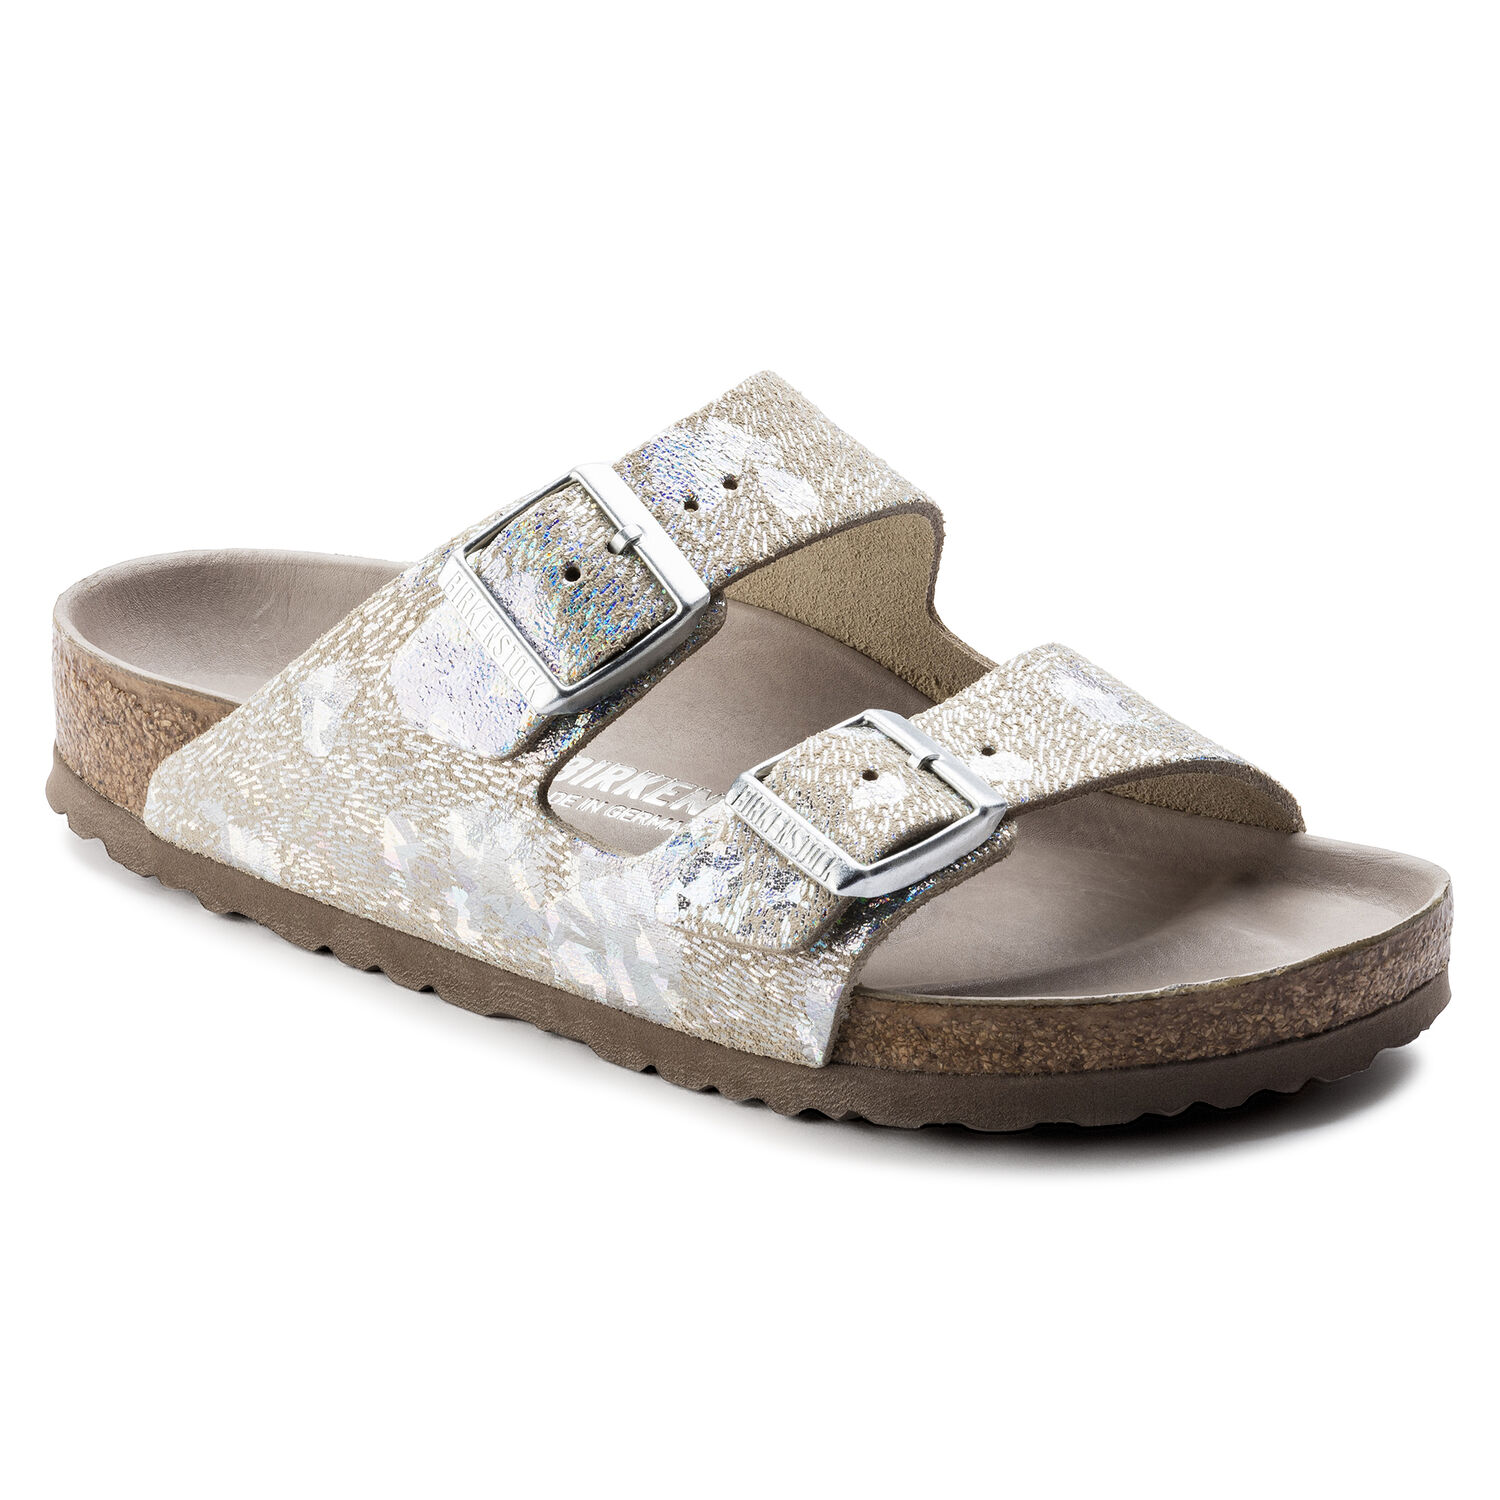 arizona natural leather spotted metallic silver birkenstock. Black Bedroom Furniture Sets. Home Design Ideas